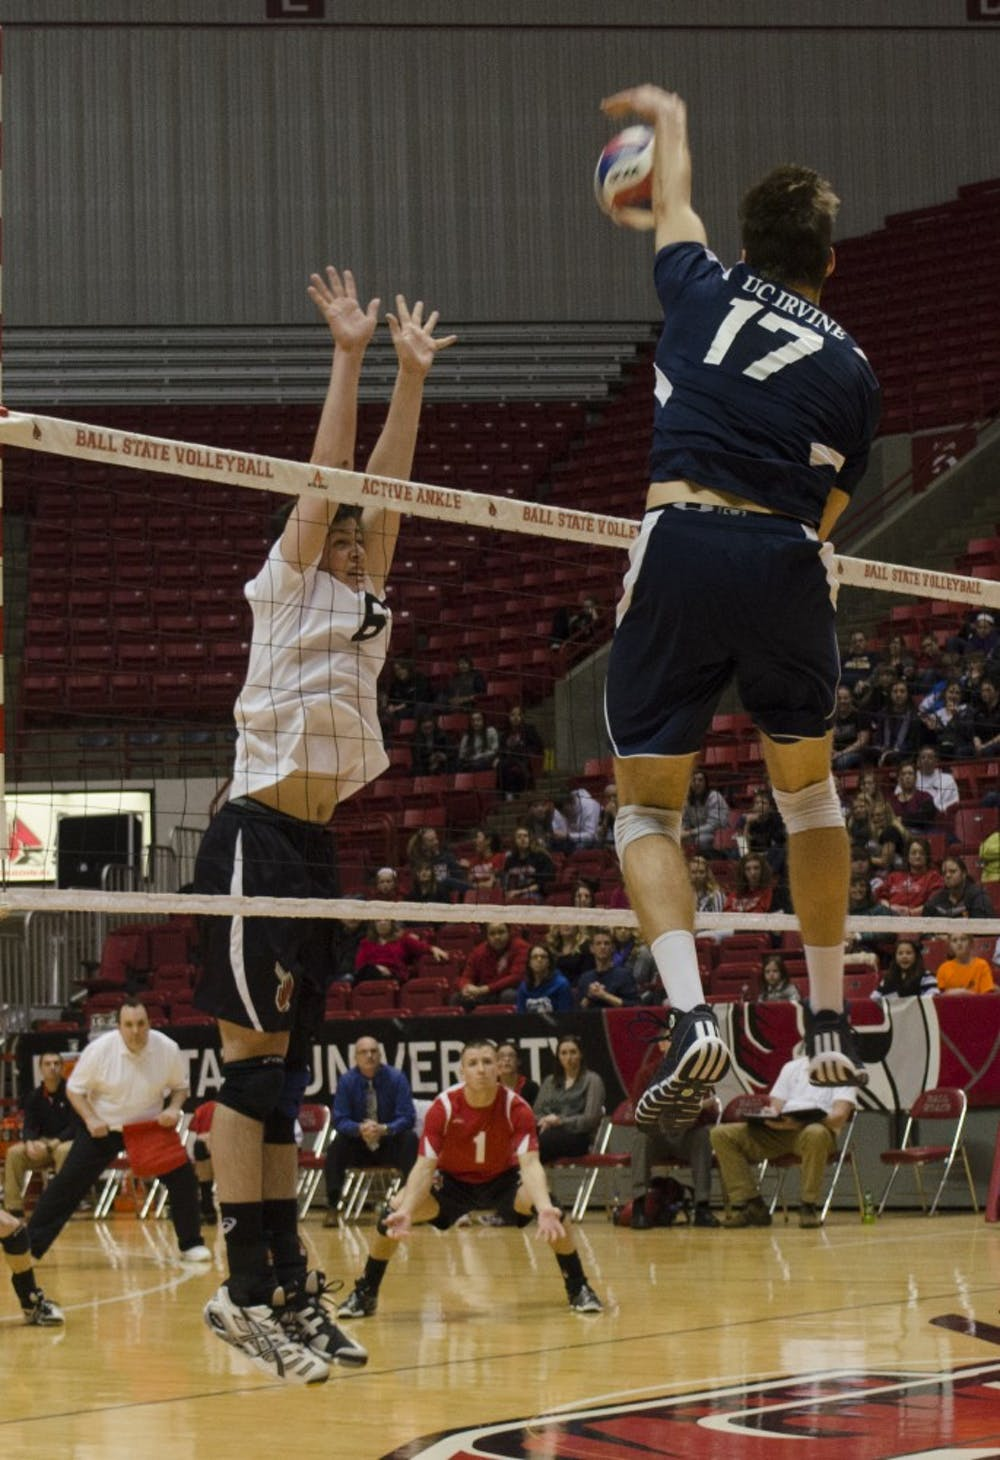 Freshman outside attacker Brendan Surane jumps up to block the ball from UC Irvine player Zach La Cavera at Worthen Arena on Jan. 4. Surane had six kills and six errors in his career debut. DN PHOTO BREANNA DAUGHERTY